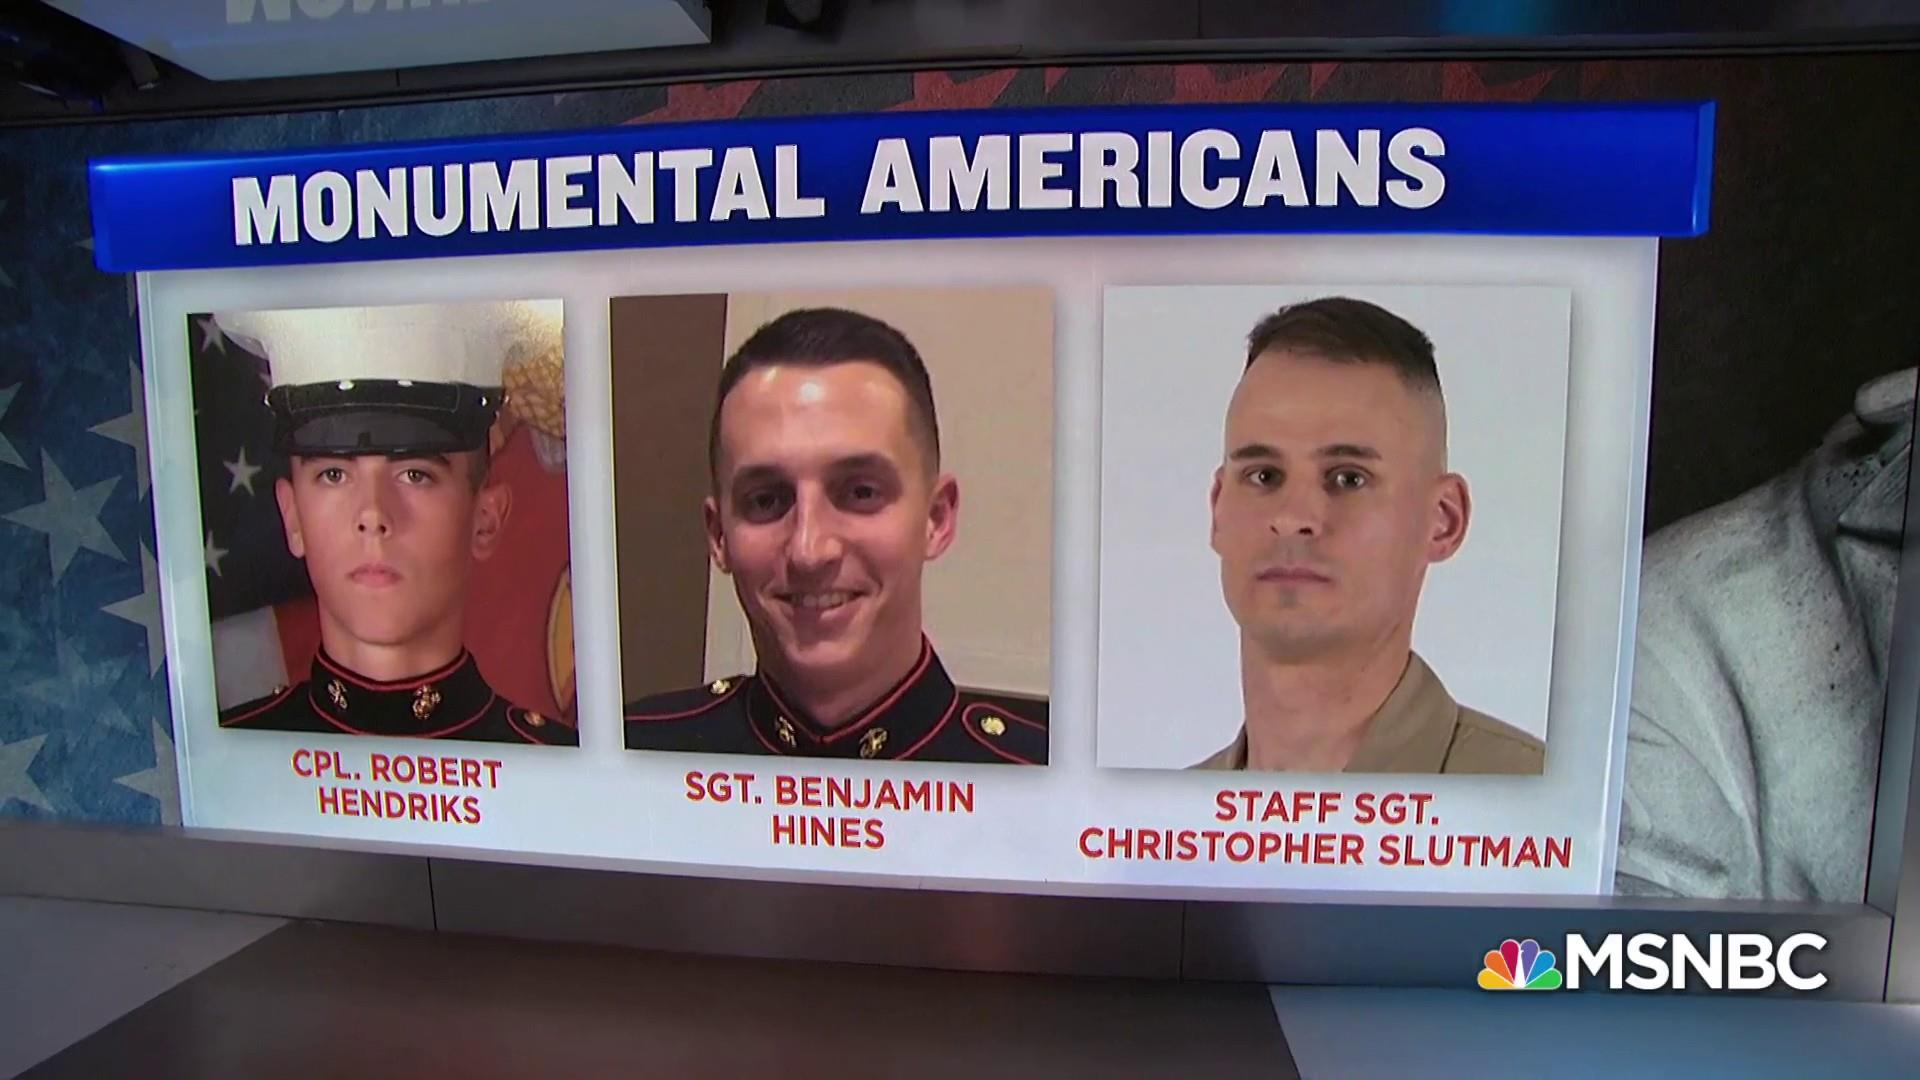 #MonumentalAmericans: 3 Marines killed days before coming home